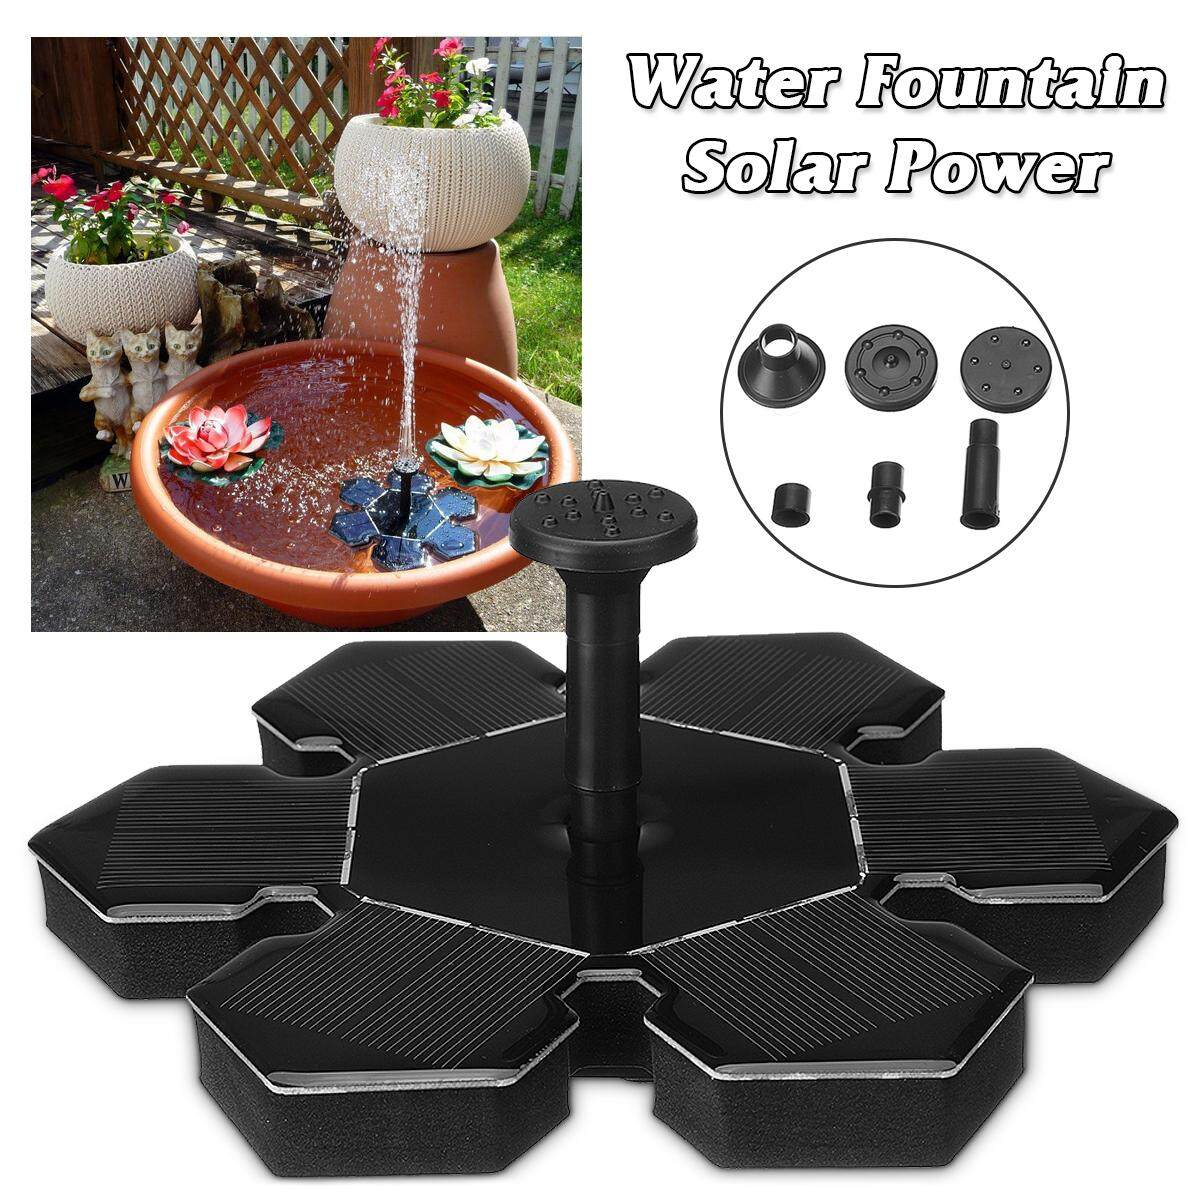 Mini Outdoor Floating Solar Power Water Fountain Submersible Pump Kit For Garden